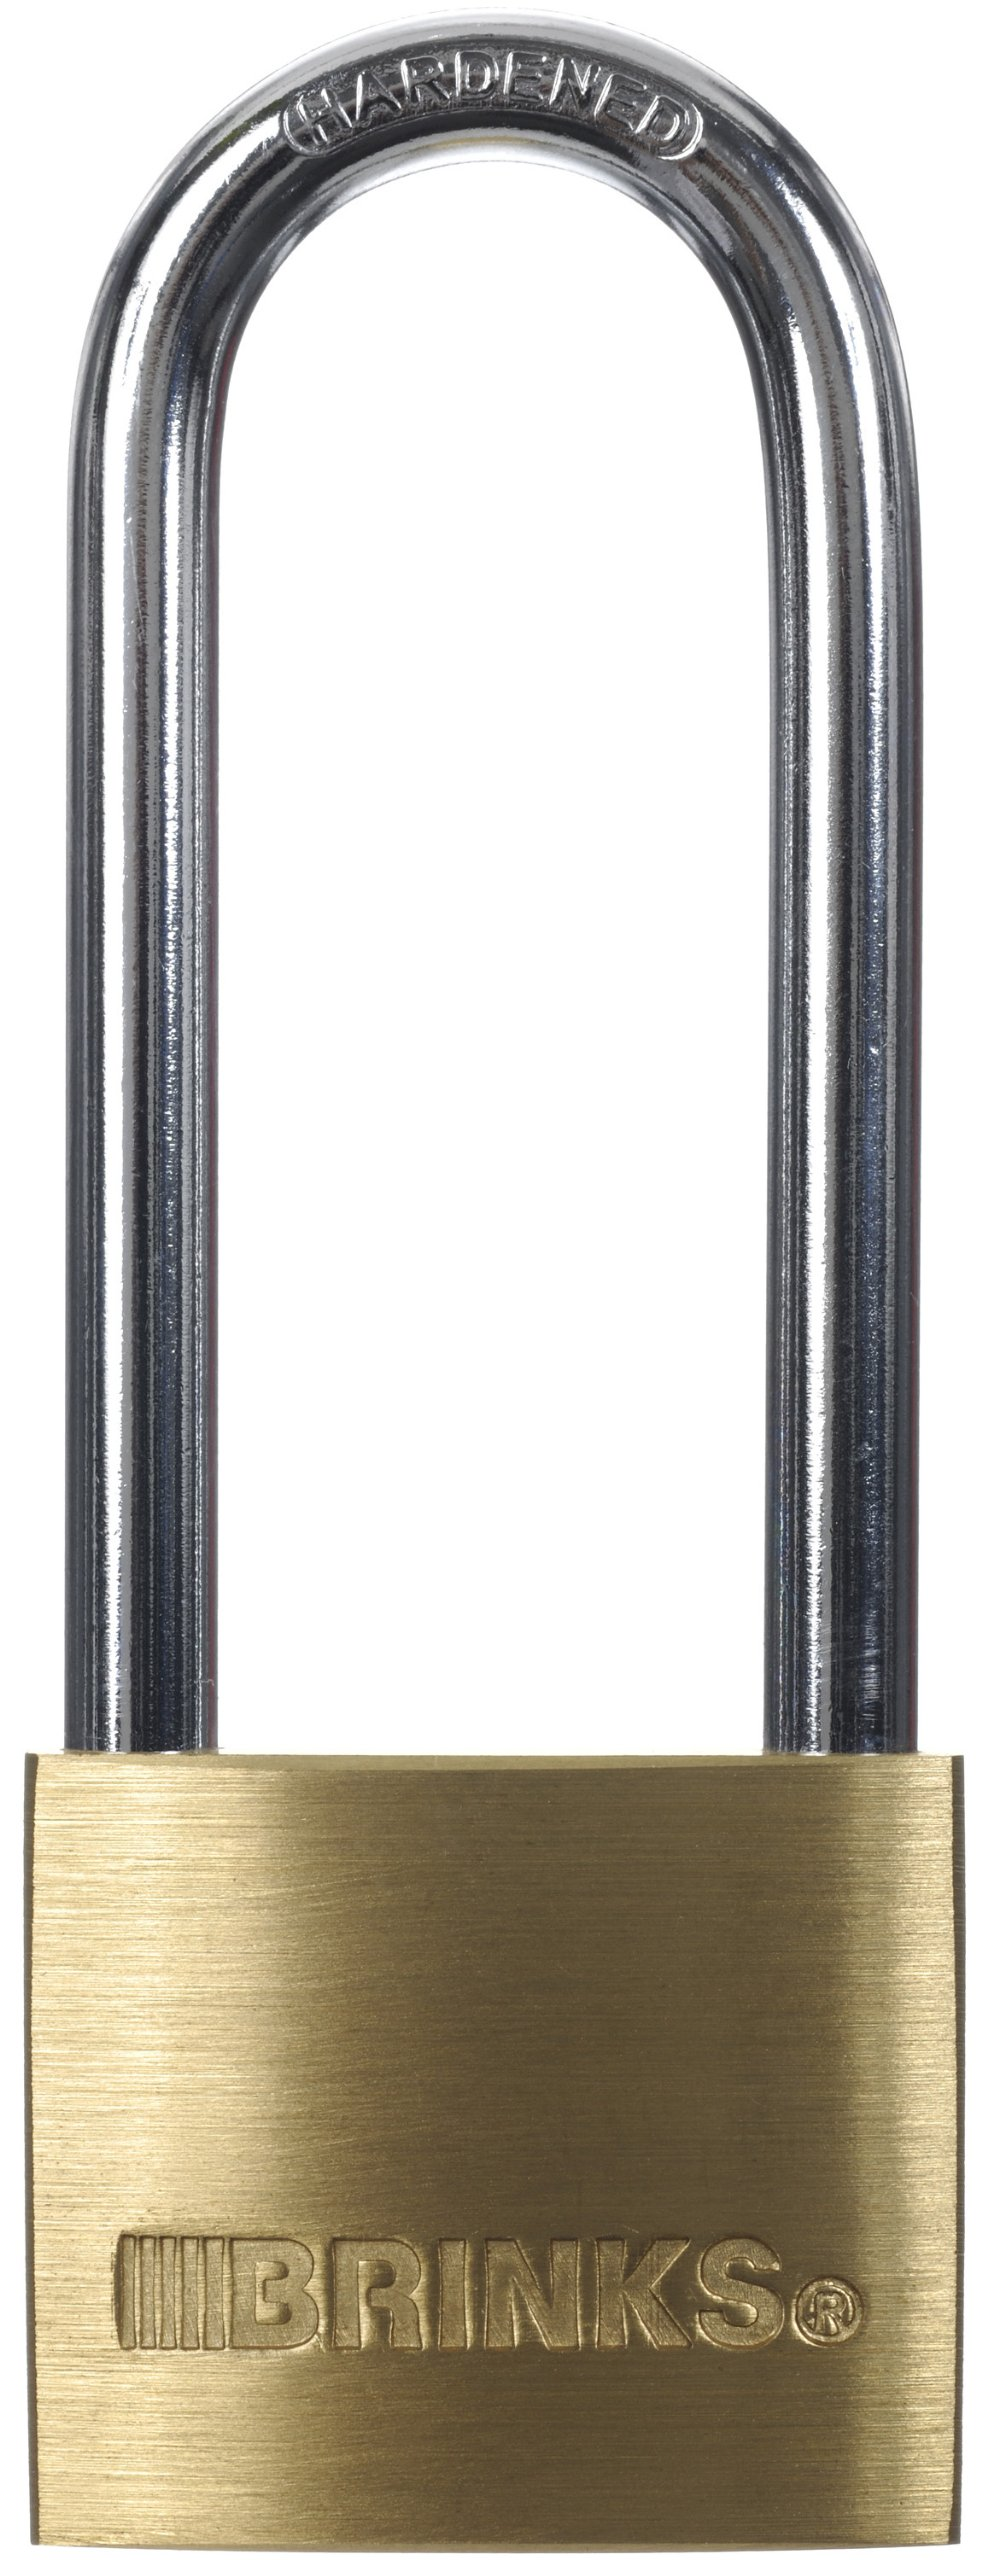 Brinks 161-42001 1-9/16-Inch 40mm Solid Brass Padlock with 2.5-Inch Shackle, 1-Pack